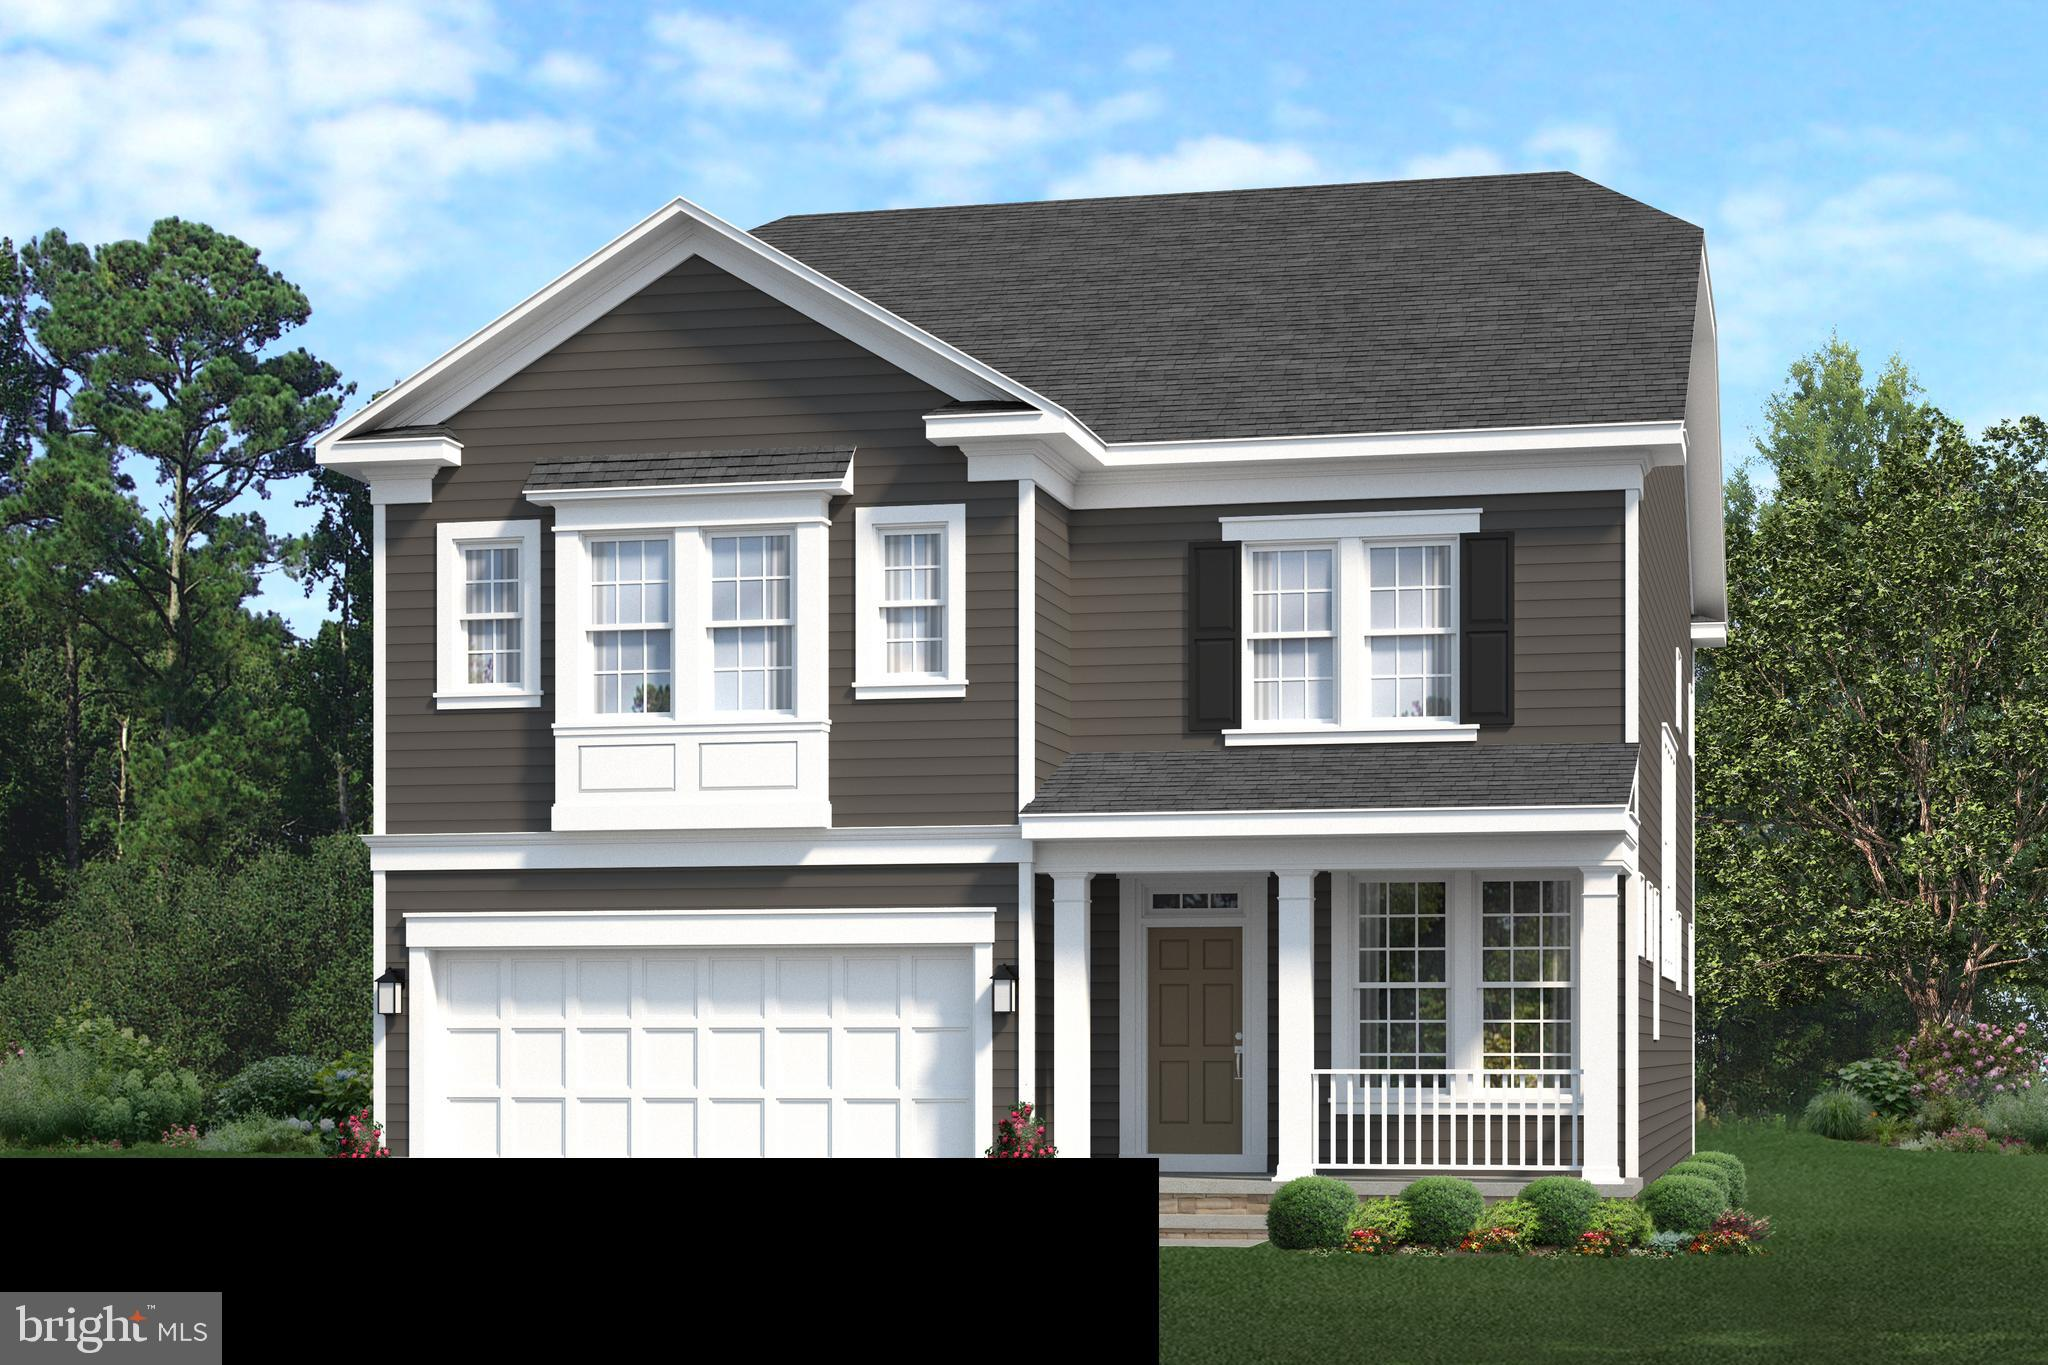 Pre-Construction Opportunity! ~ End of  2019 Delivery. Act now to personalize before ground breaking! 4,401 sq. ft. featuring open concept from Kitchen to Great Room with coffered ceiling and fireplace. Deluxe Kitchen featuring upgraded stainless appliances and quartz countertops. Open Concept with Dining and Study on Main level. Mud Rm off garage; Butler Pantry and so much more!